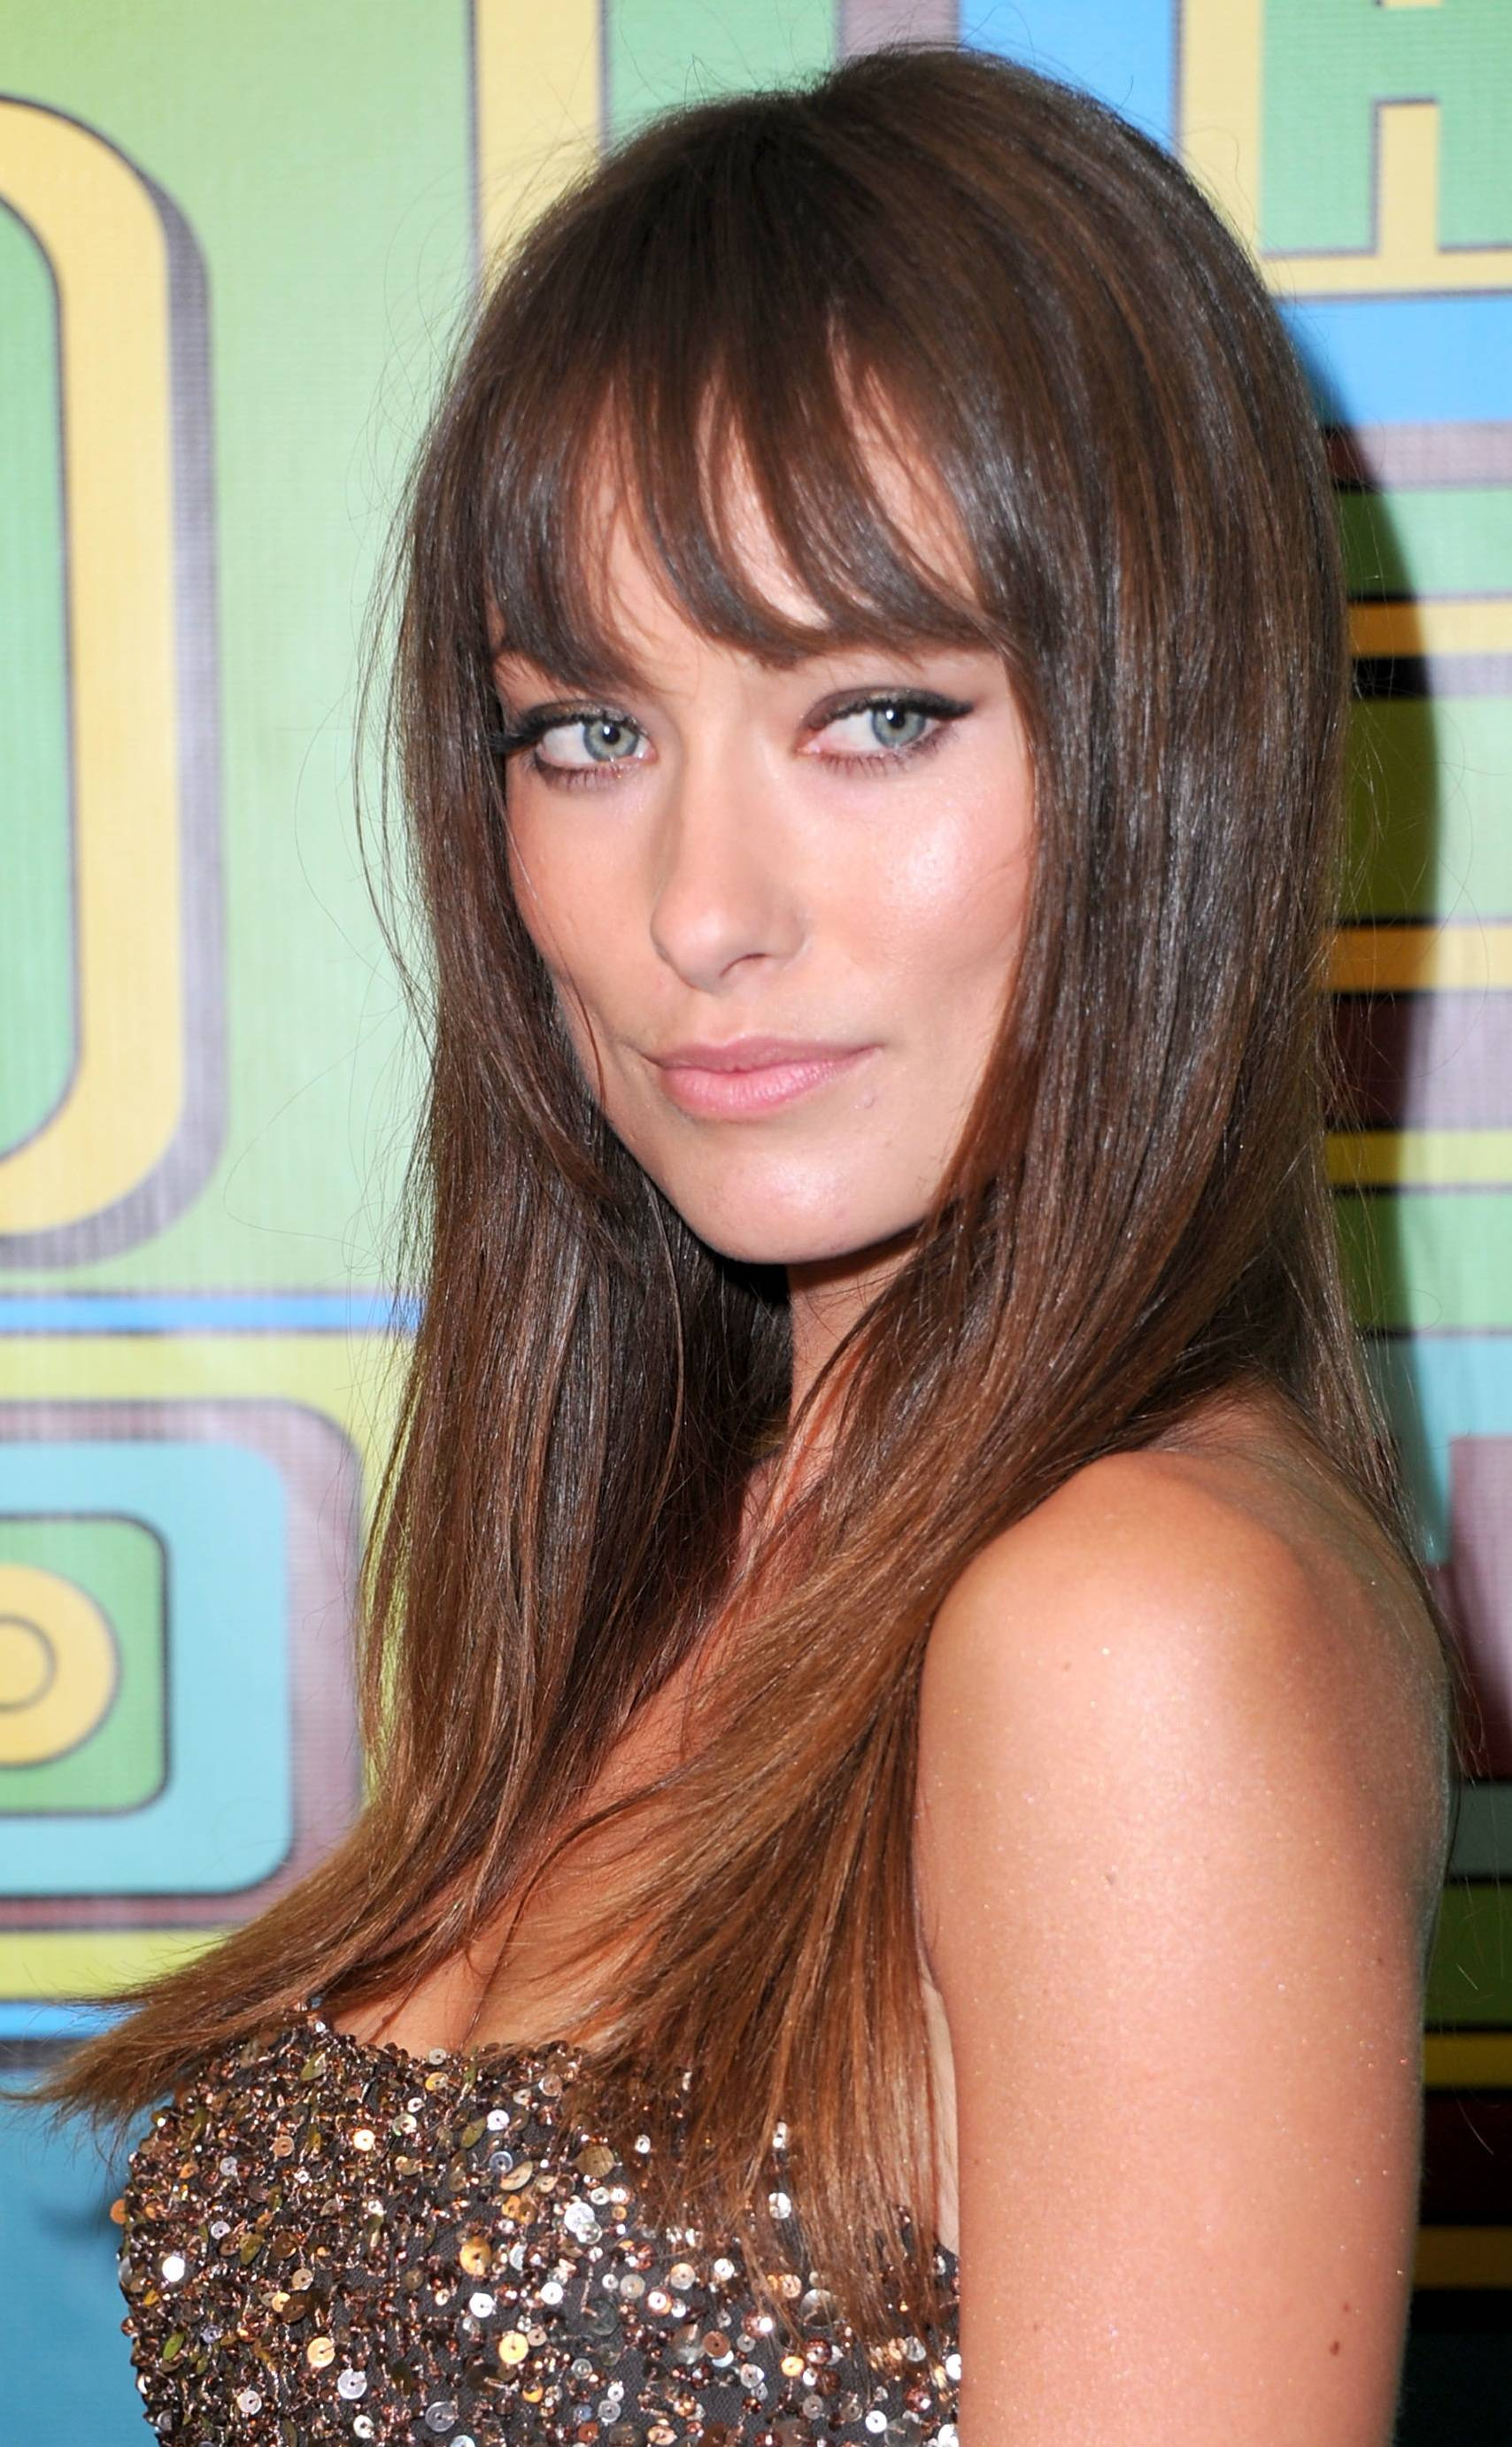 Wispy Bangs Hairstyle For Round Face Shape